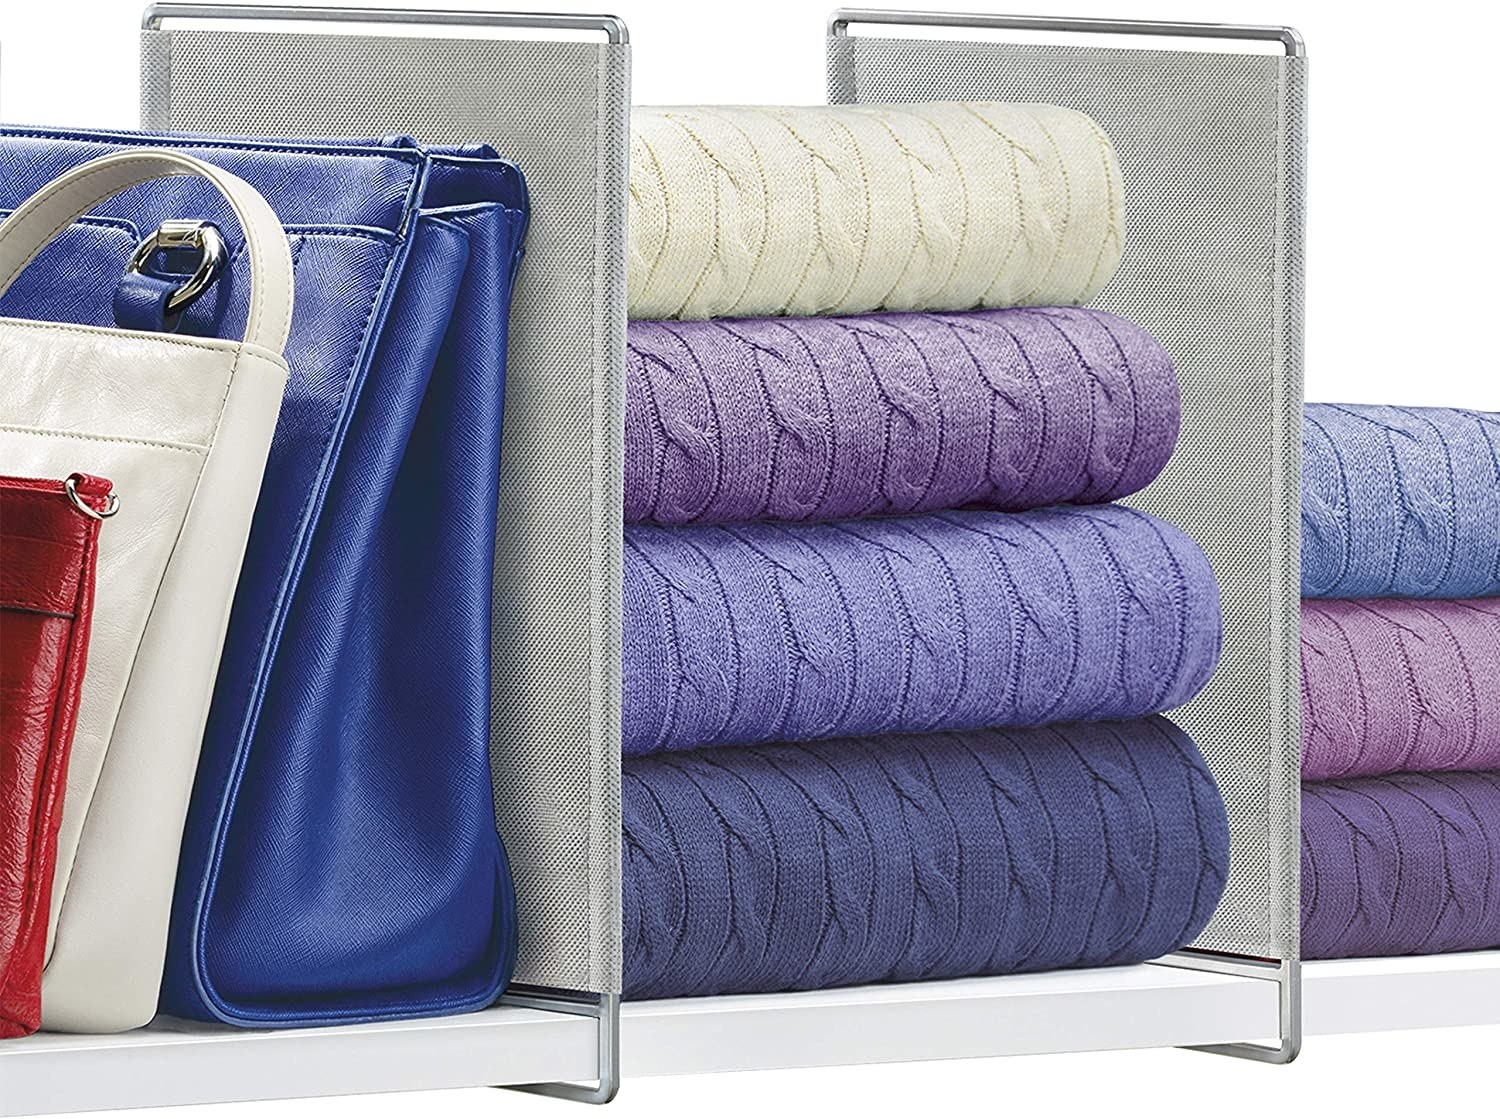 Handbags and sweaters separated with the shelf dividers